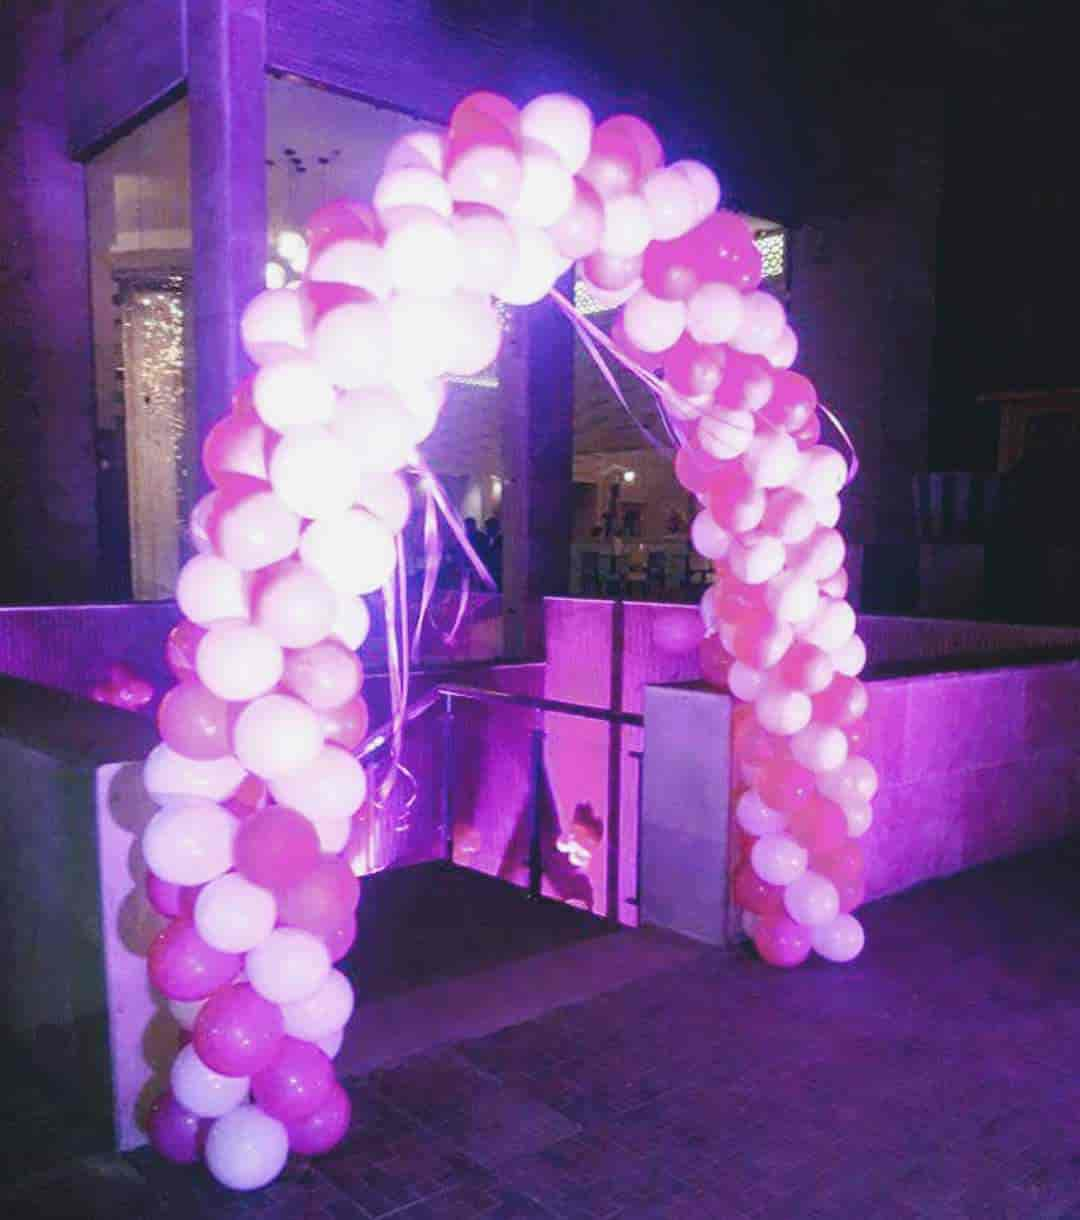 Decoration De Ballon Fancy Ballon Decoration Photos Dwarka Sector 12 Delhi Pictures